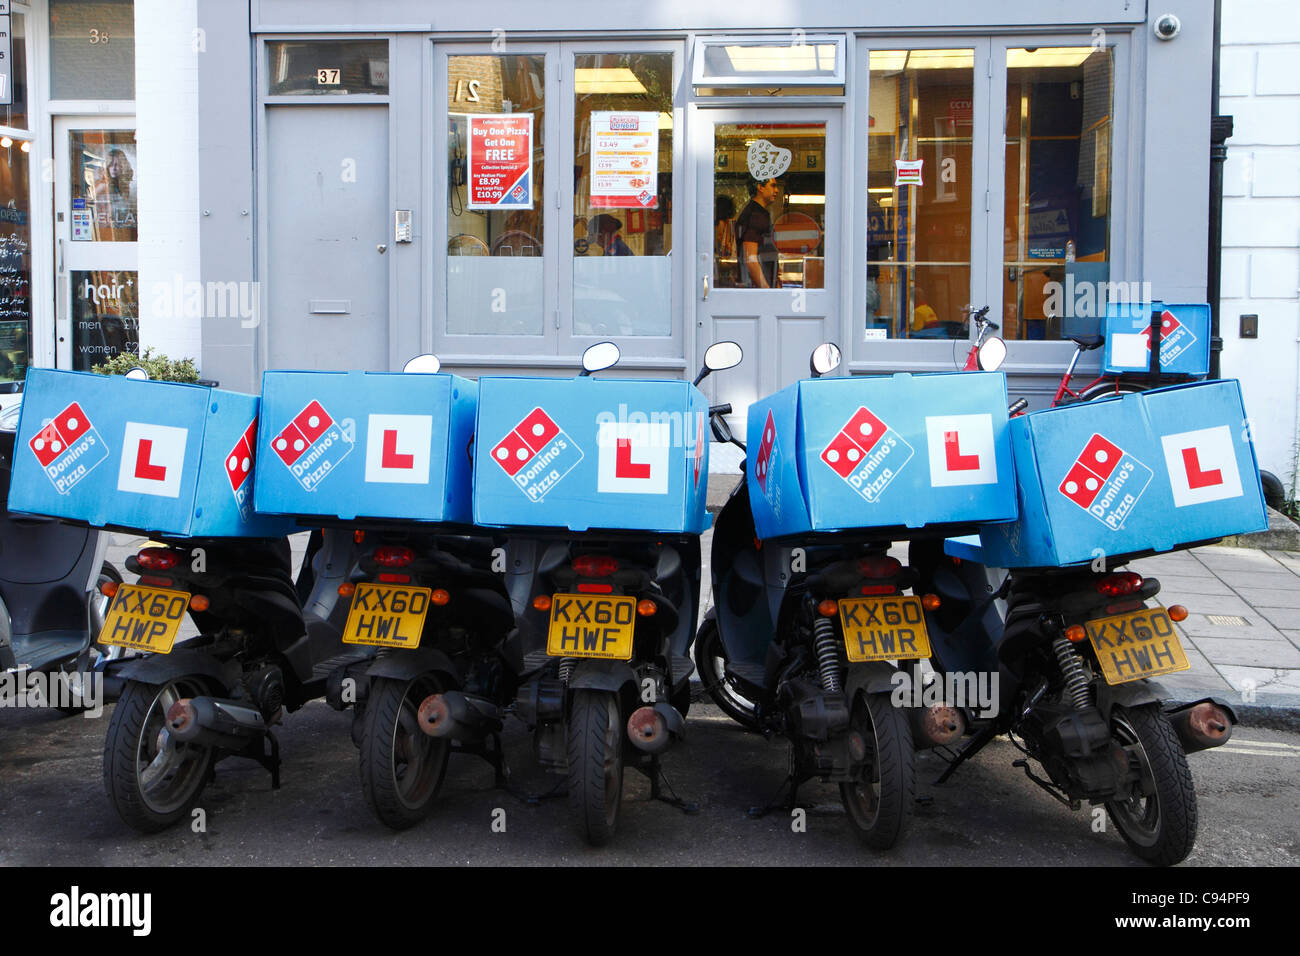 Dominos Pizza Delivery Bikes London Uk Stock Photo